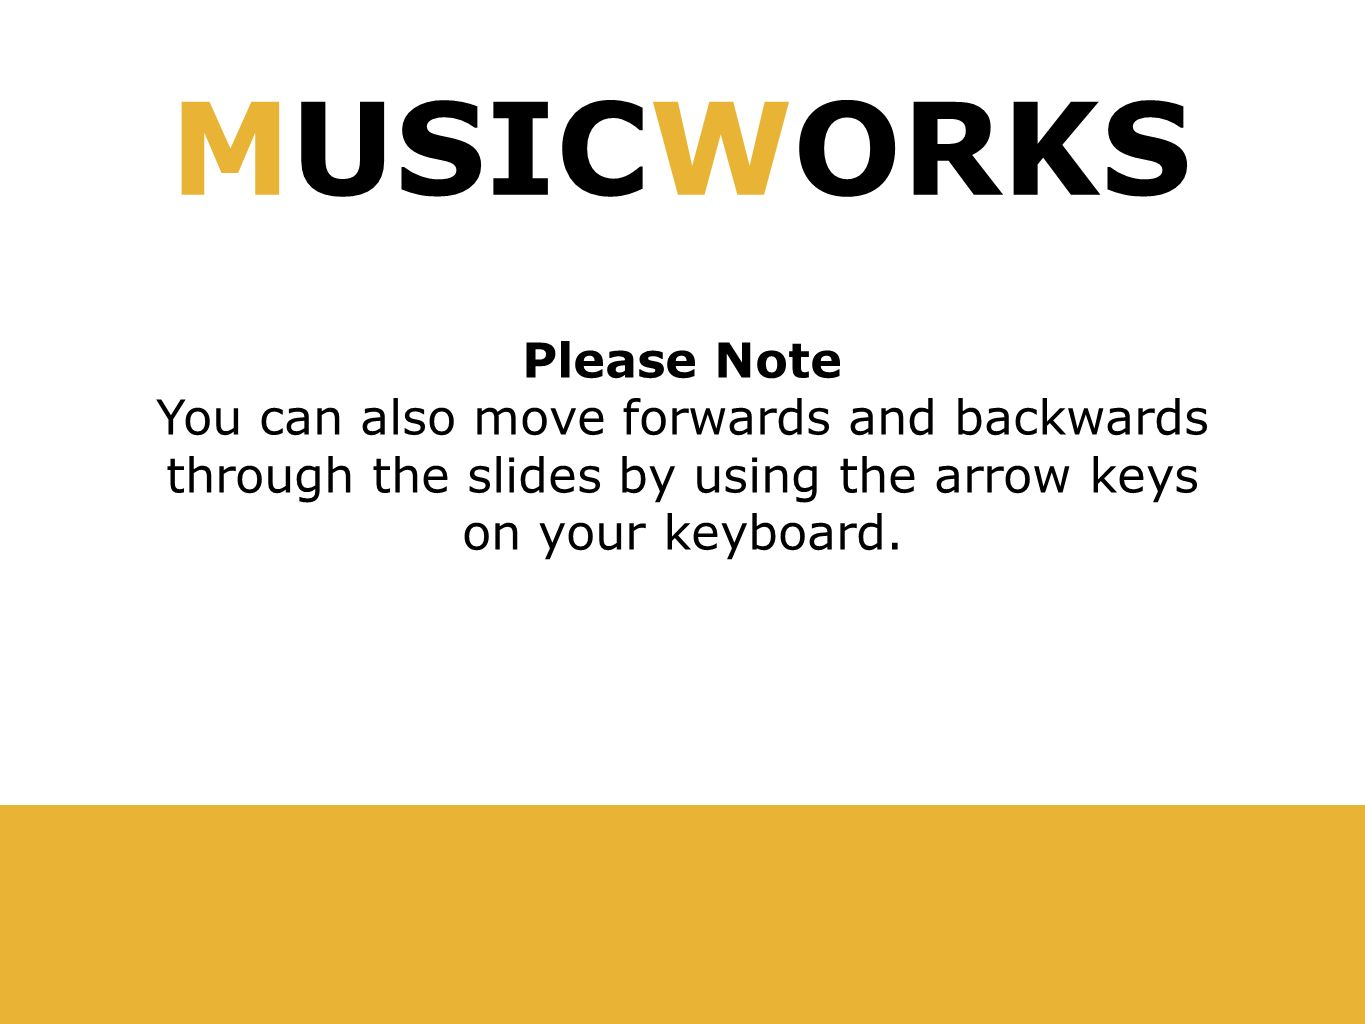 Please Note You can also move forwards and backwards through the slides by using the arrow keys on your keyboard.